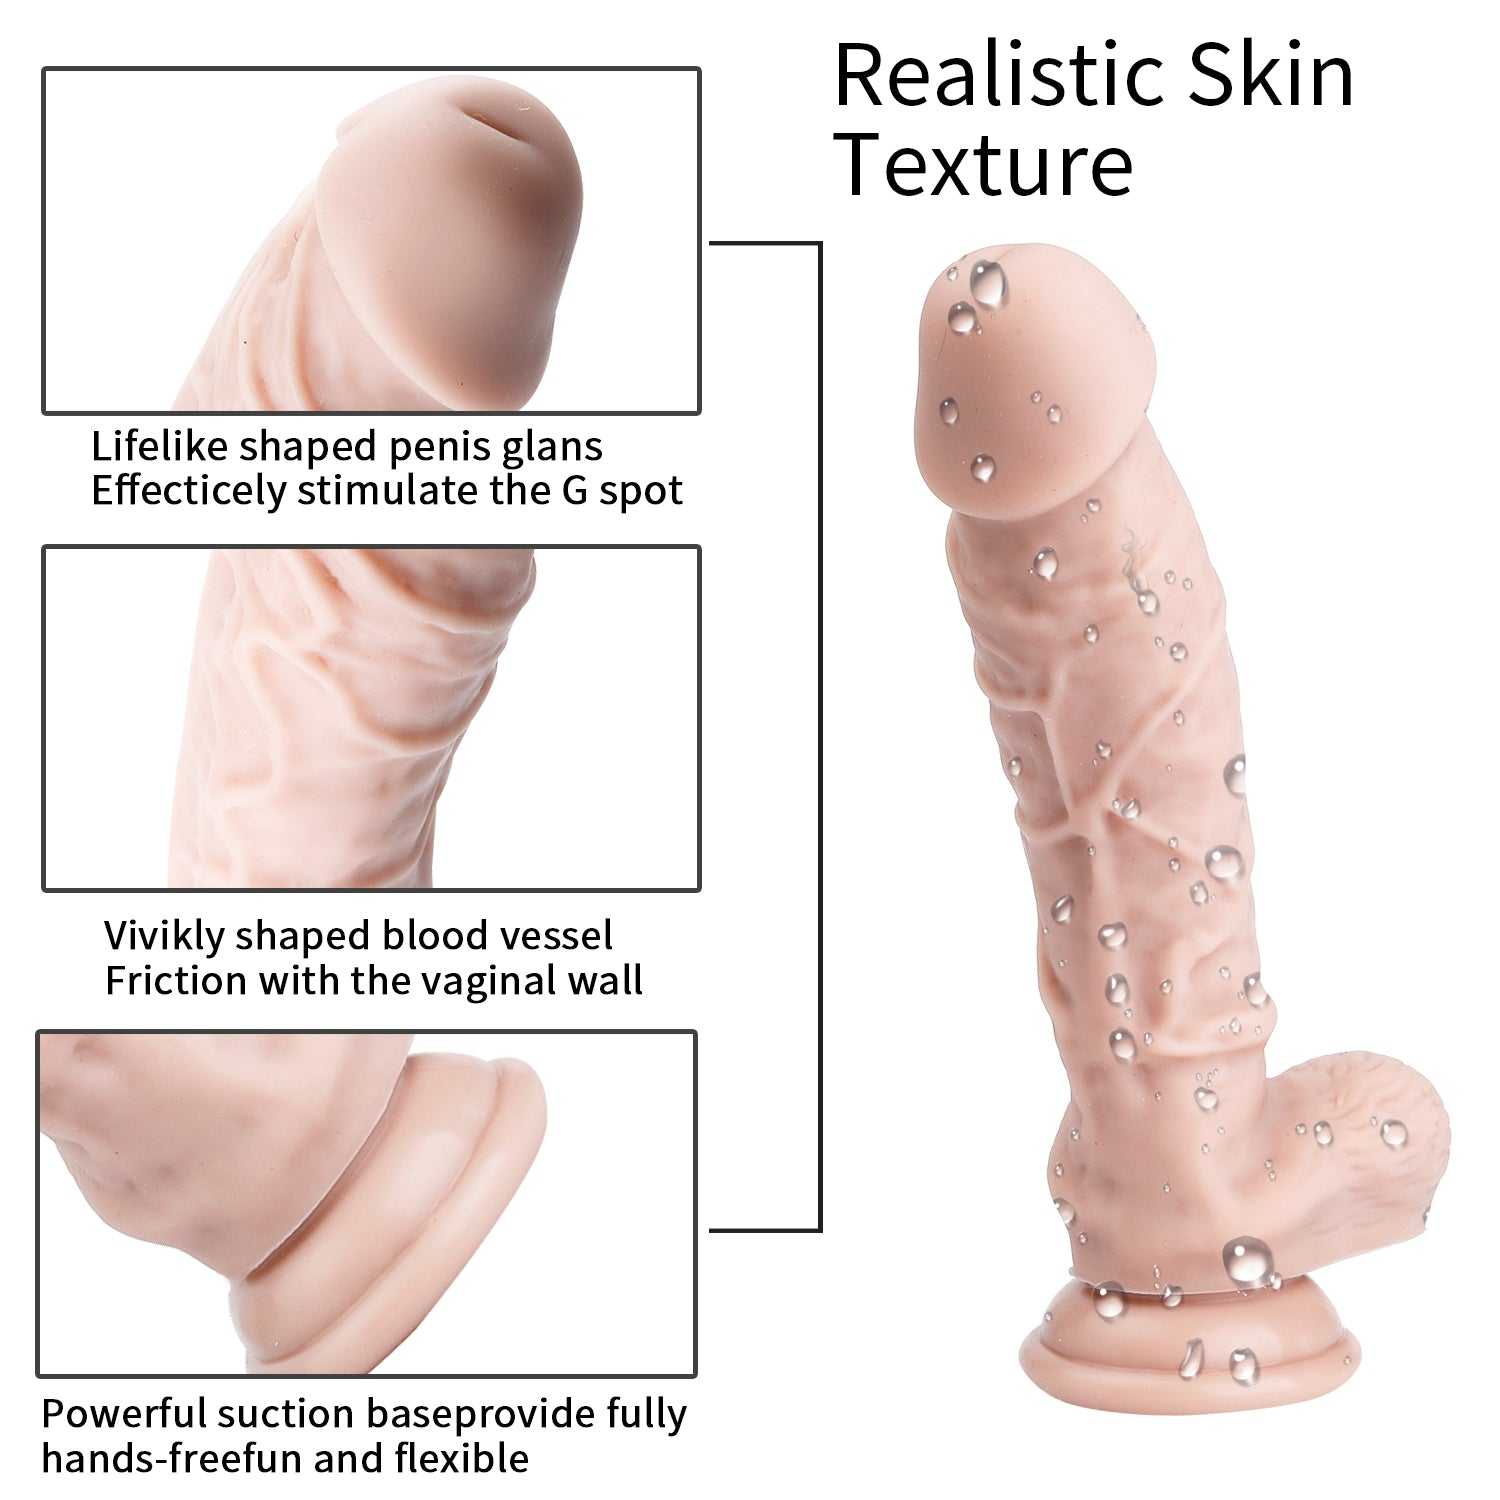 MD 20cm Realistic Silicone Dildo with Suction Cup Flesh&Black